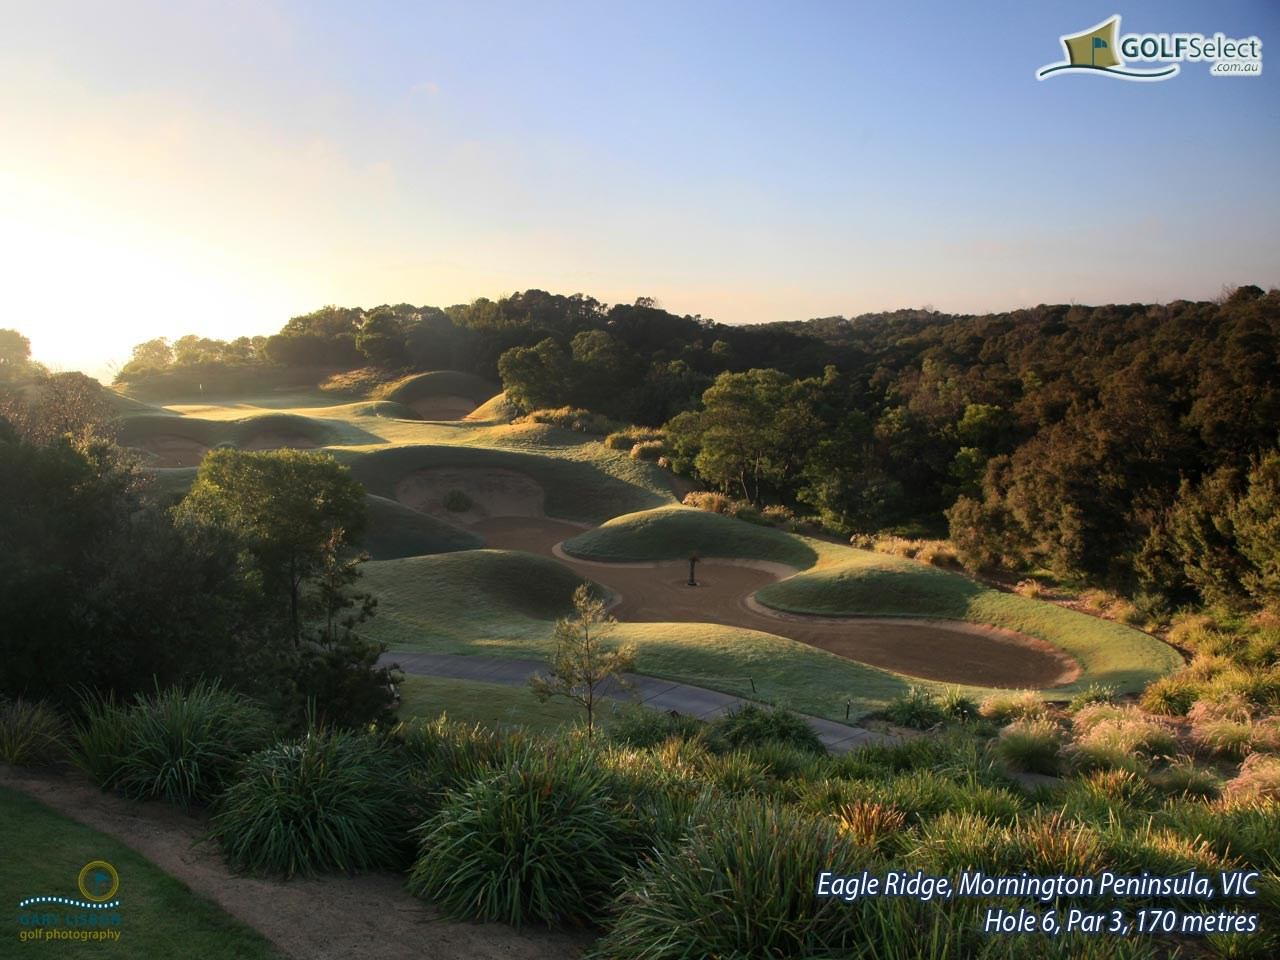 Eagle Ridge Golf Course Hole 6, Par 3, 175 metres